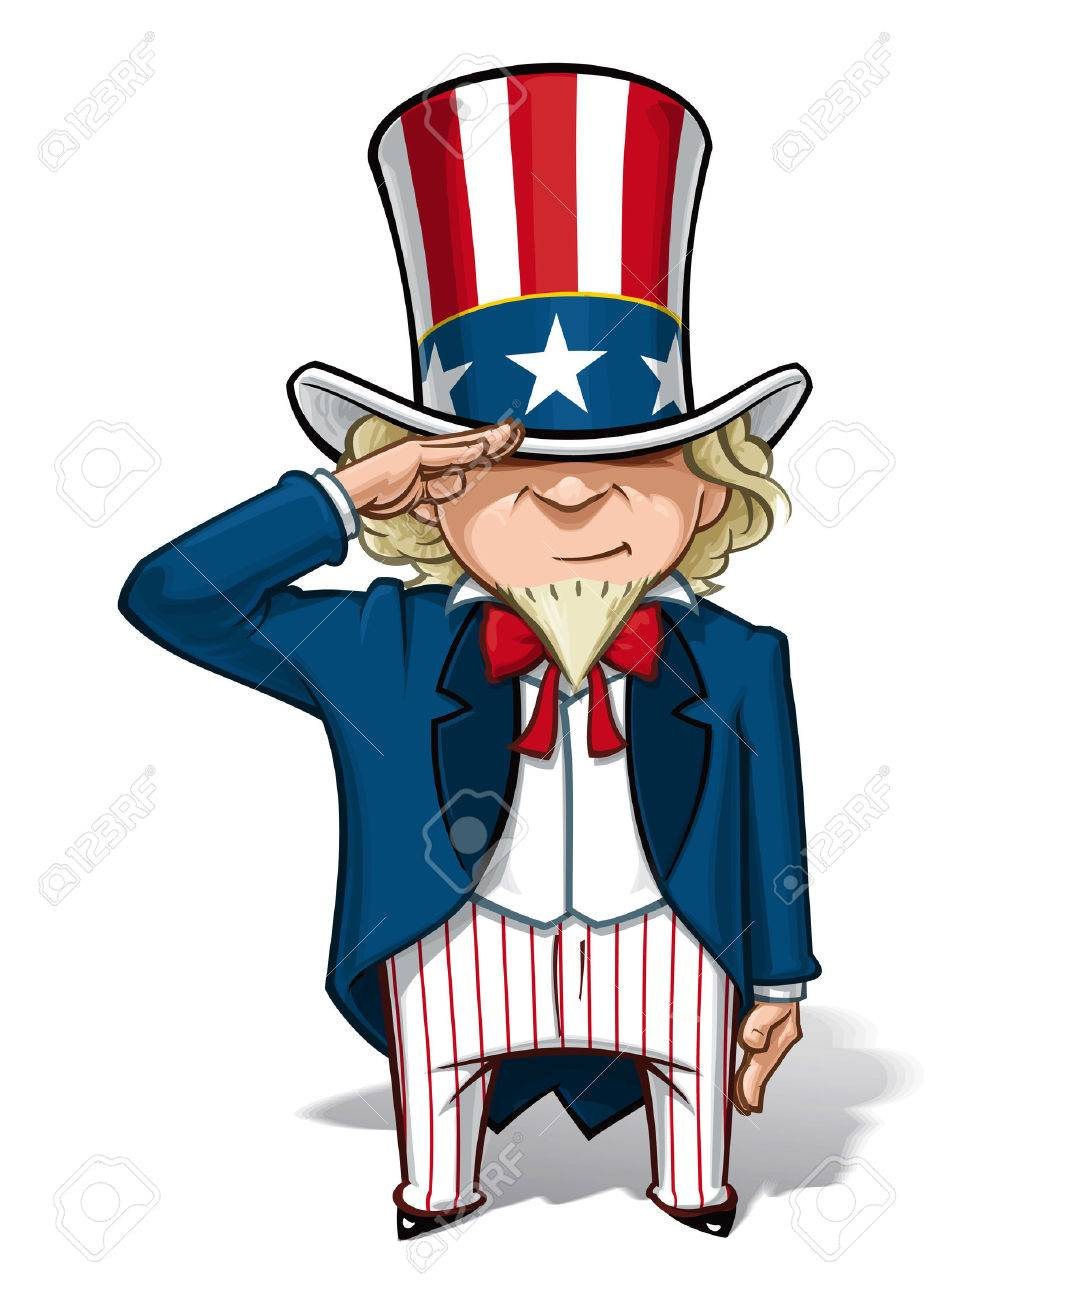 cartoon illustration of uncle sam saluting royalty free cliparts rh 123rf com uncle sam vector image oncle sam vector